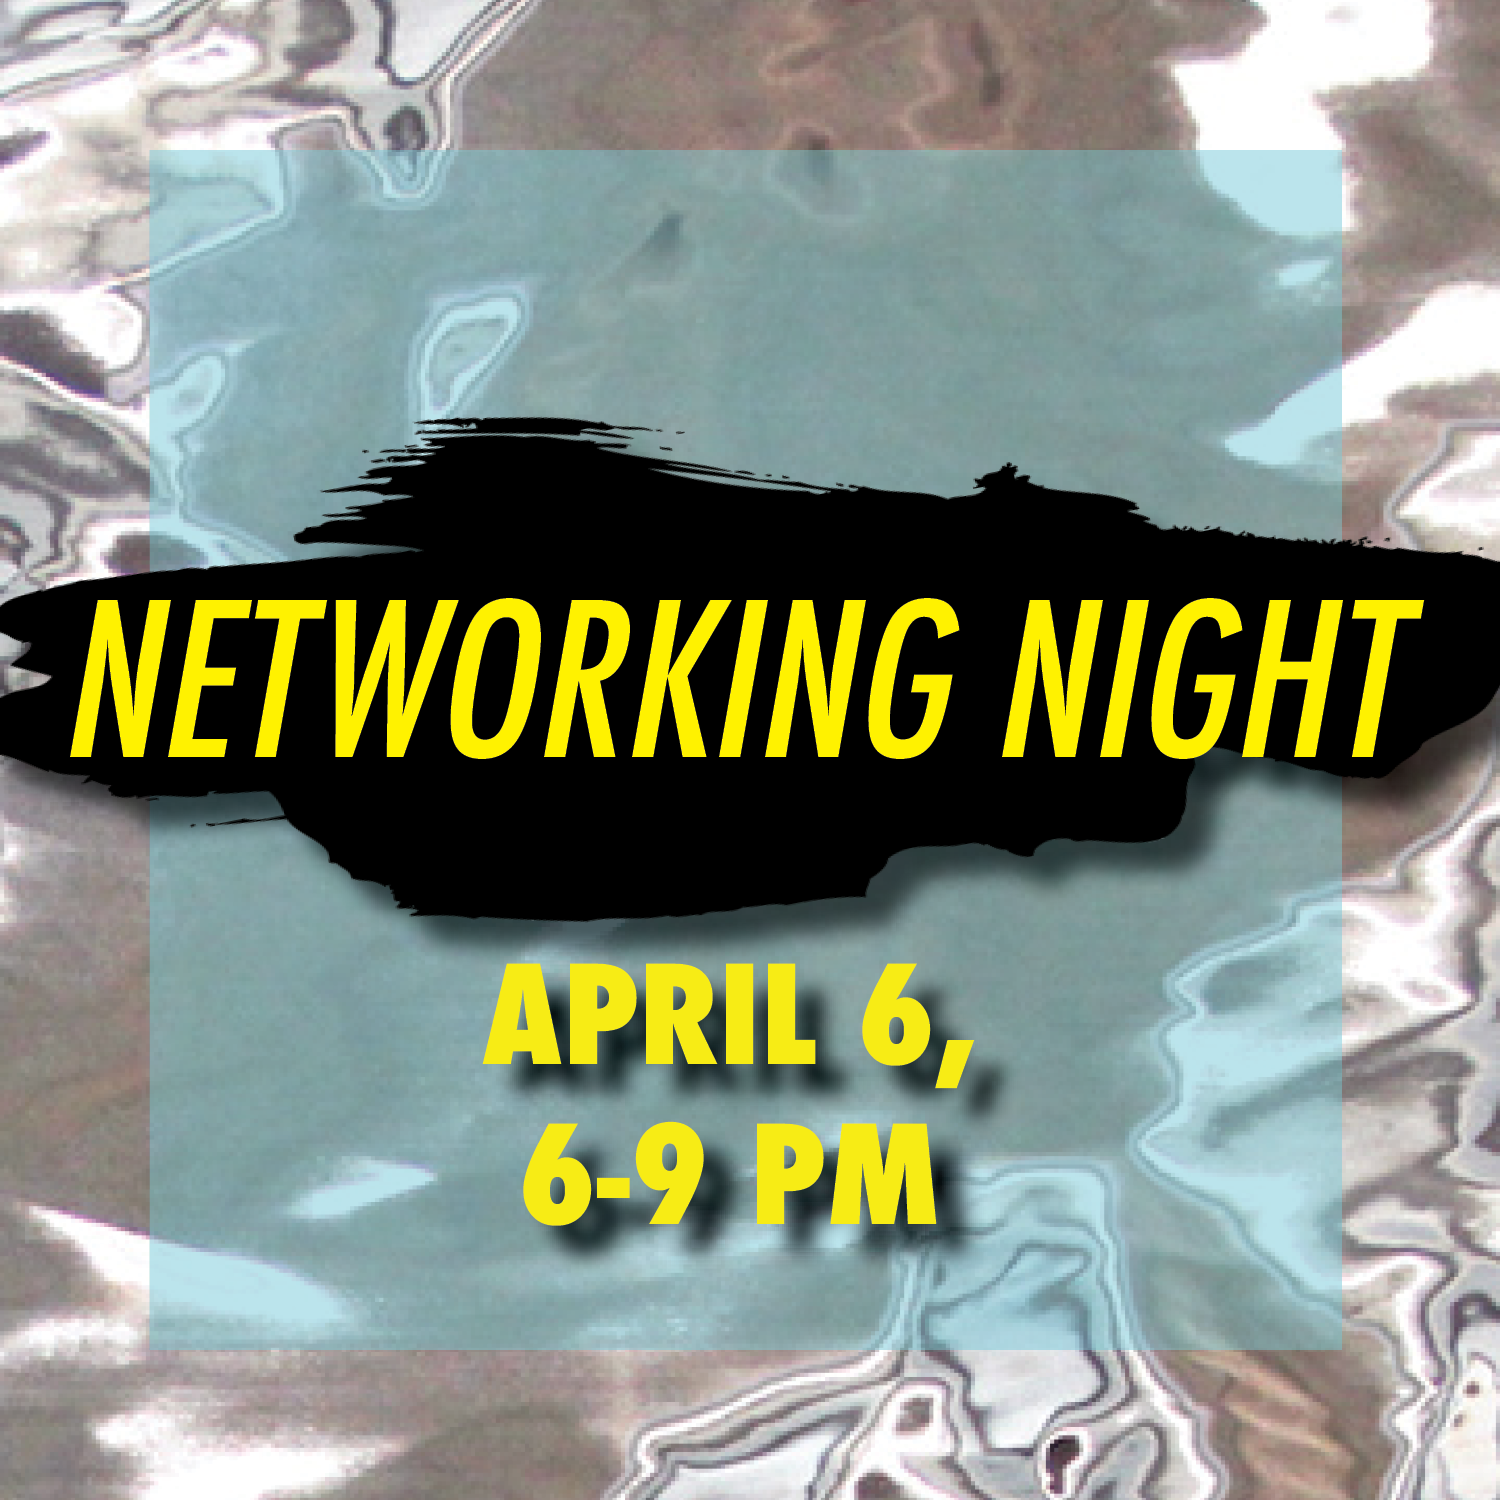 SOCIALMEDIA_NetworkingNight.png